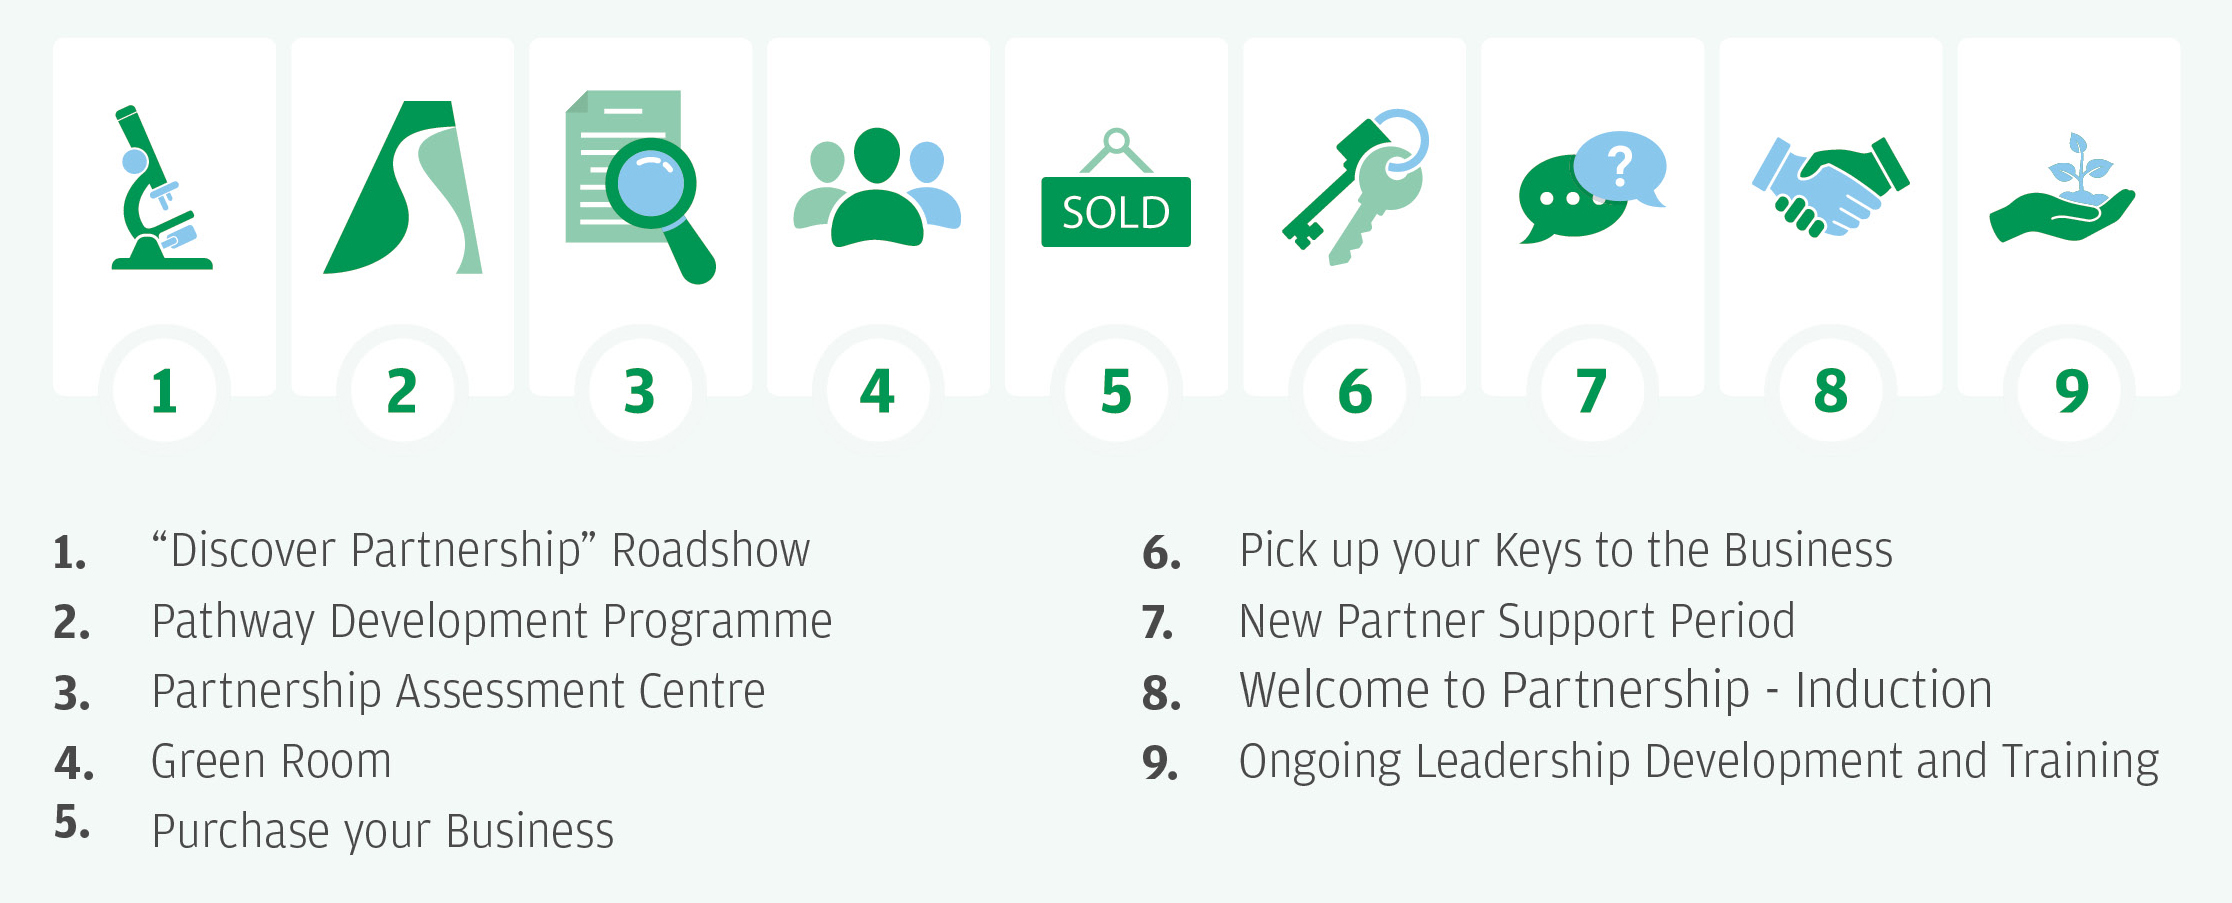 The application process for a partnership at Specsavers UK